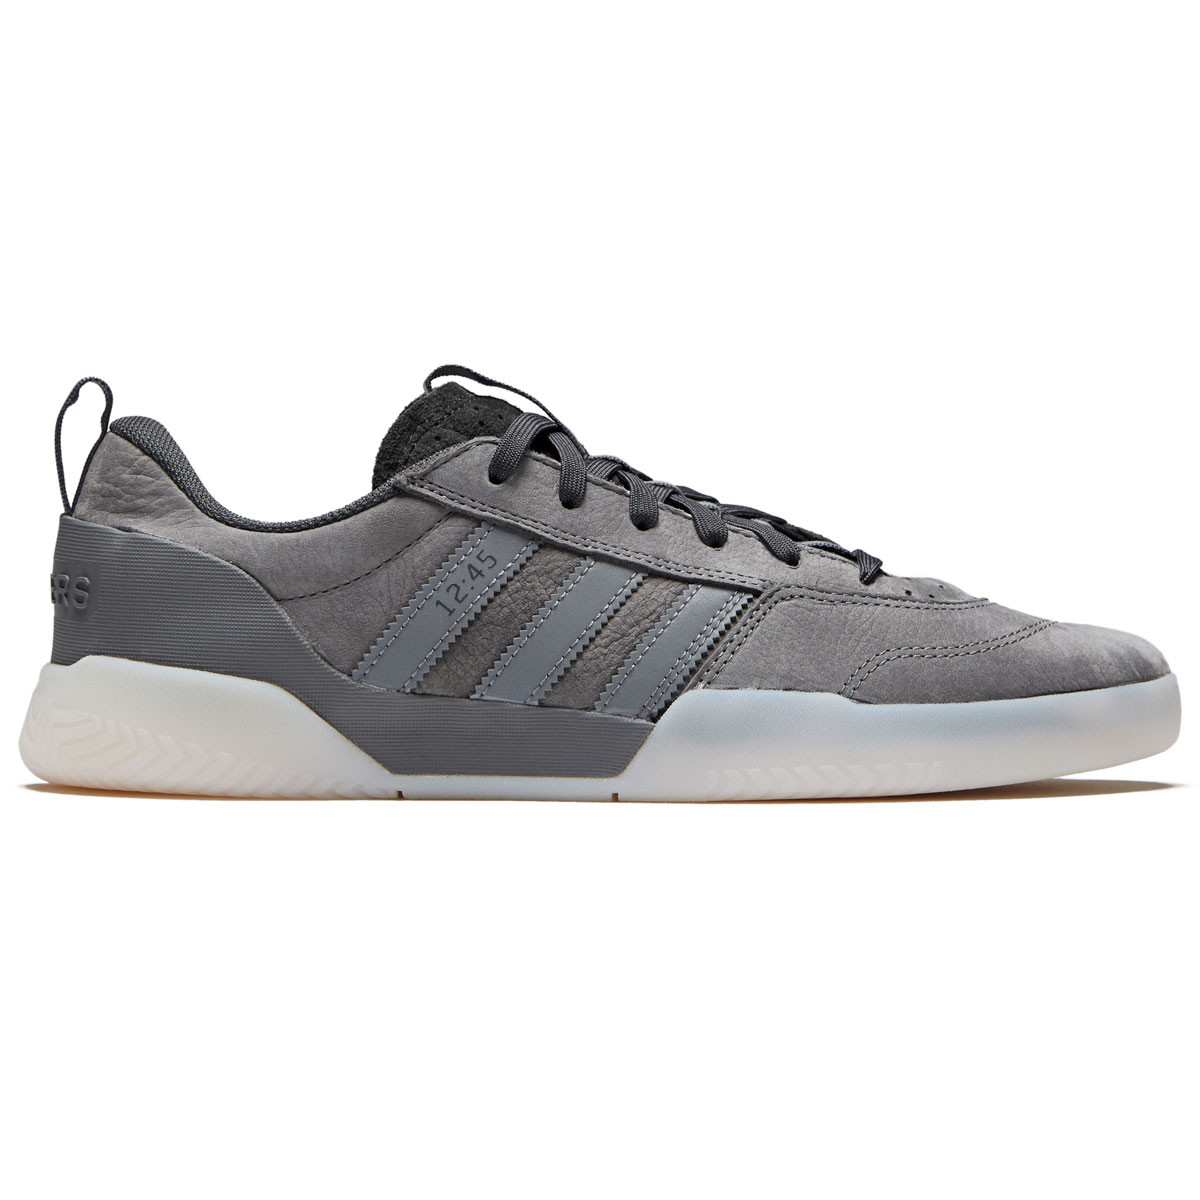 huge discount 6baf6 e0e13 Adidas X Numbers City Cup Shoes - Grey Carbon Grey One - 10.0